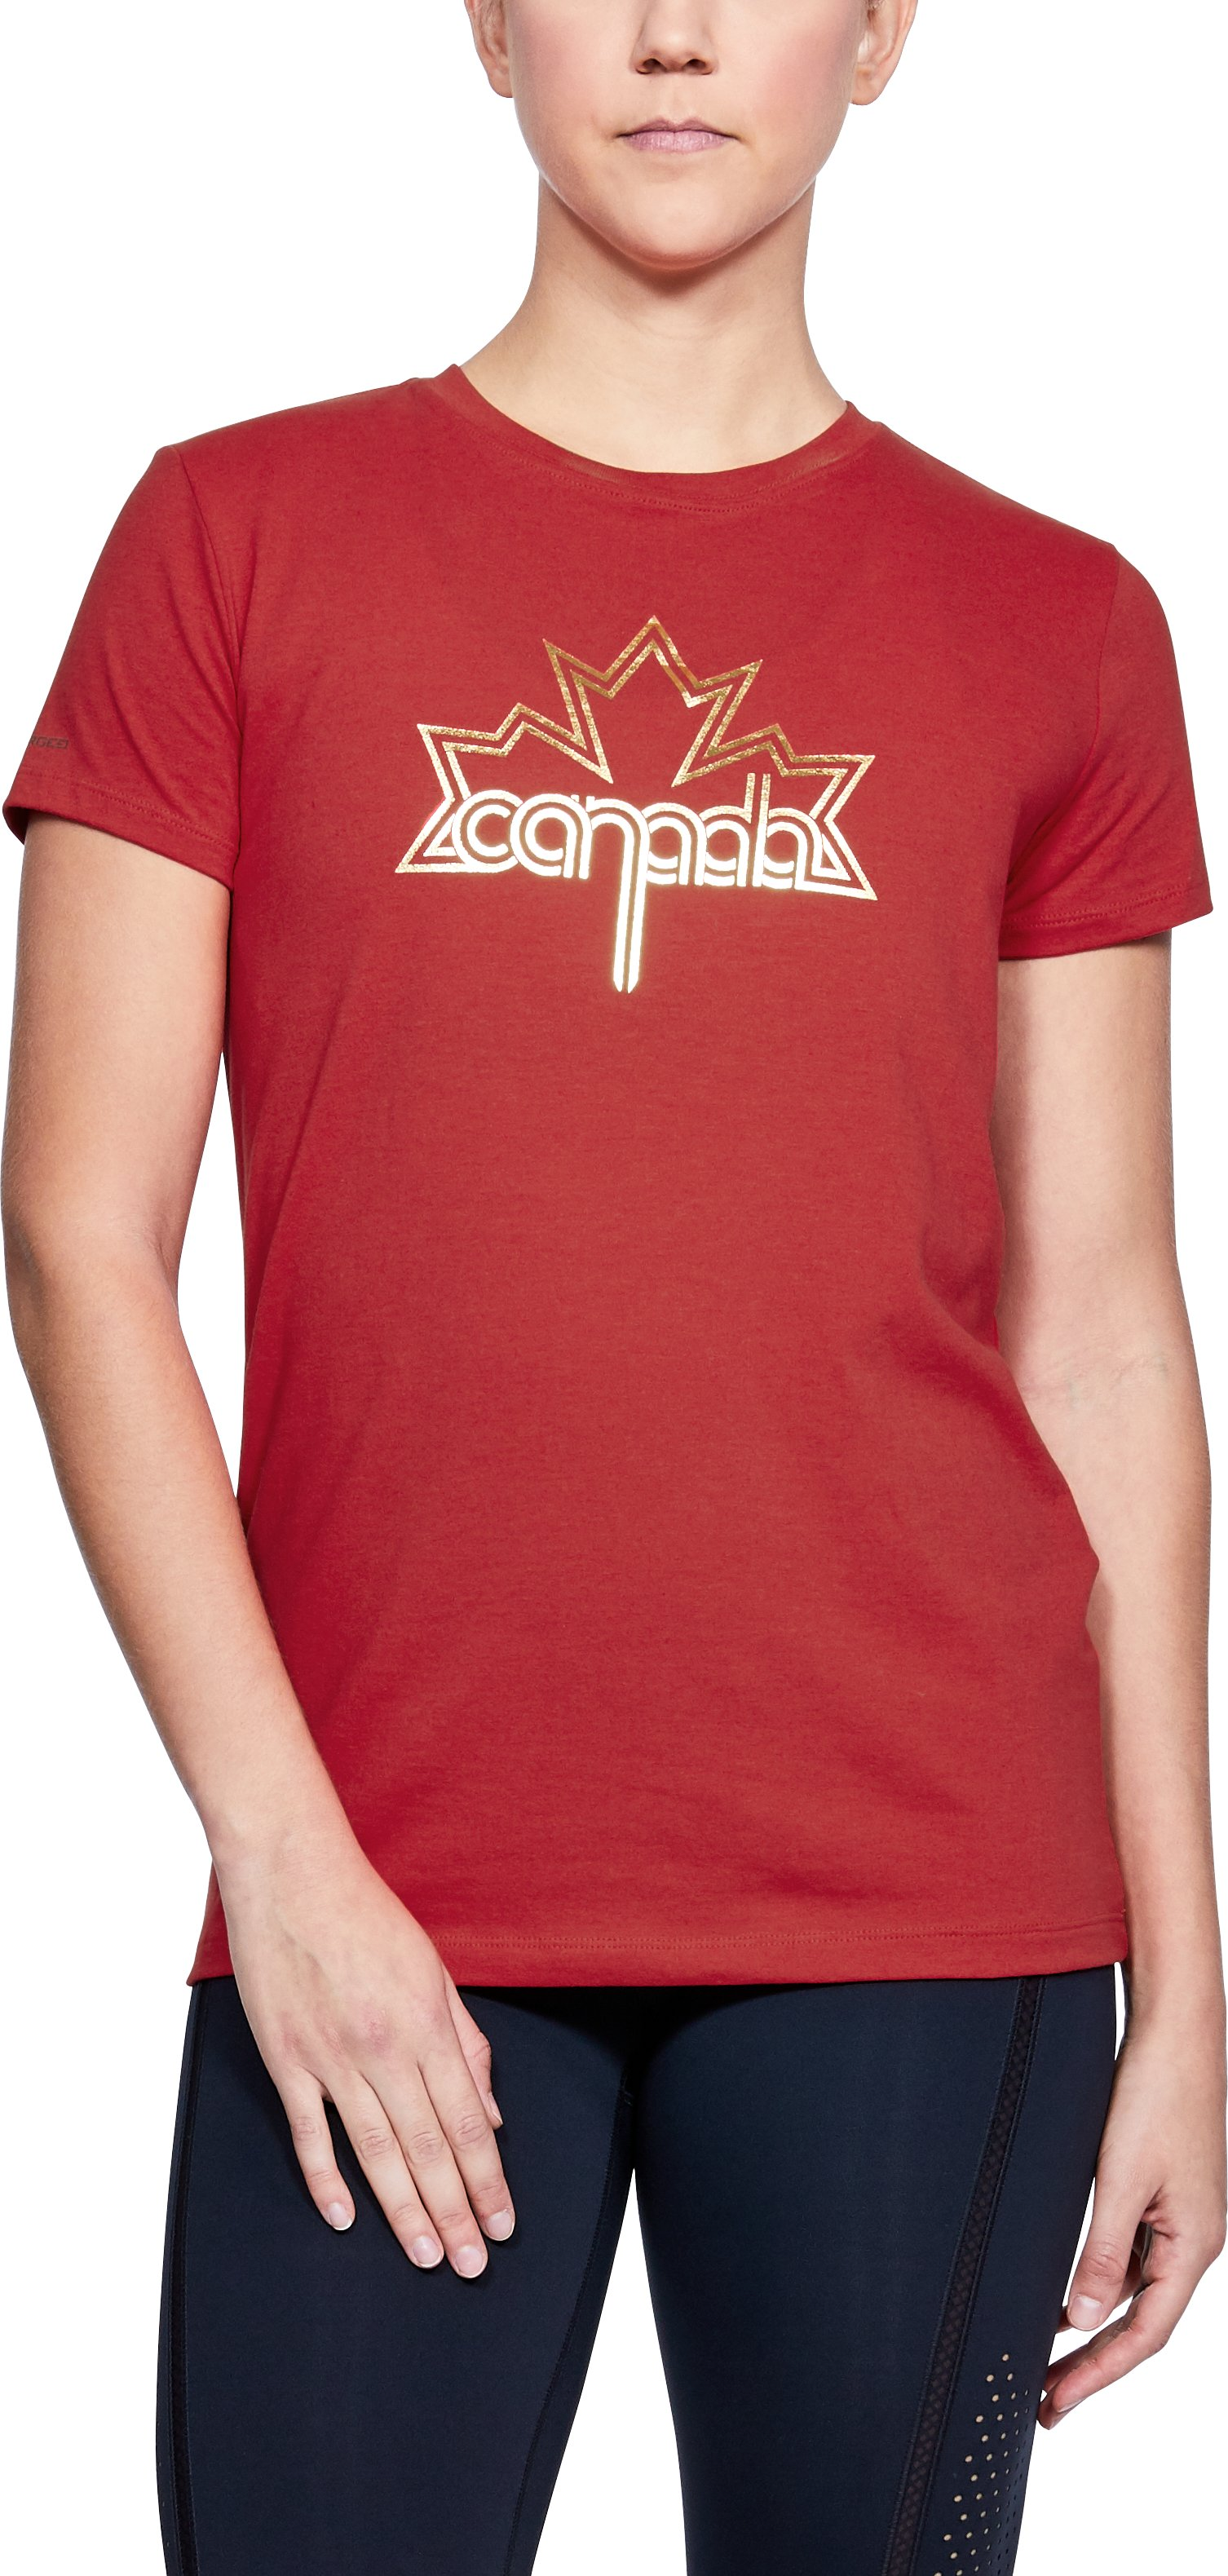 Women's UA Team Canada Performance Leaf Graphic T-Shirt, Red, zoomed